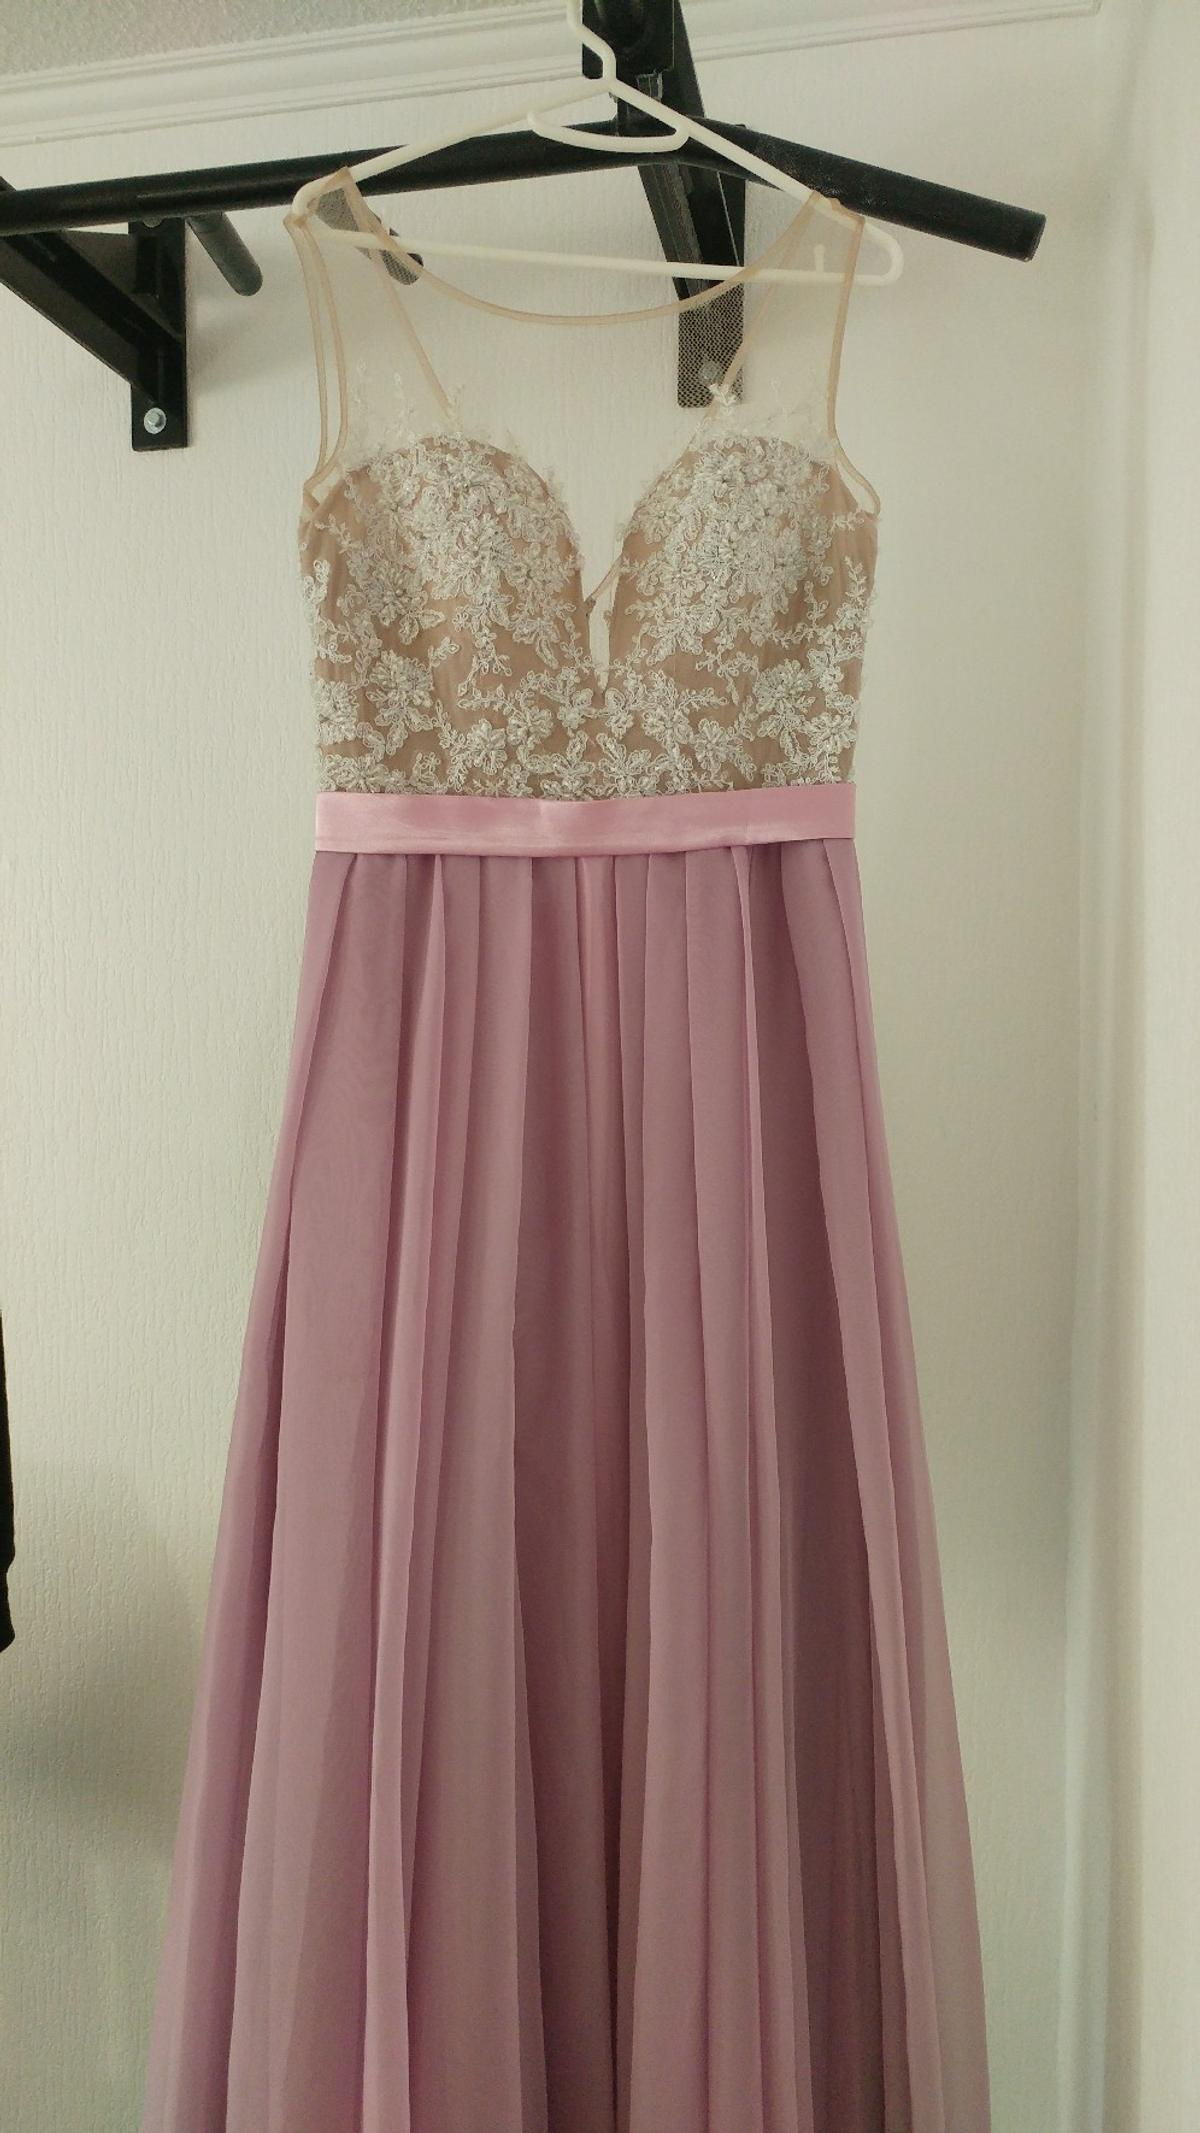 abendkleid mit tattoo-spitze in 47055 duisburg for €90.00